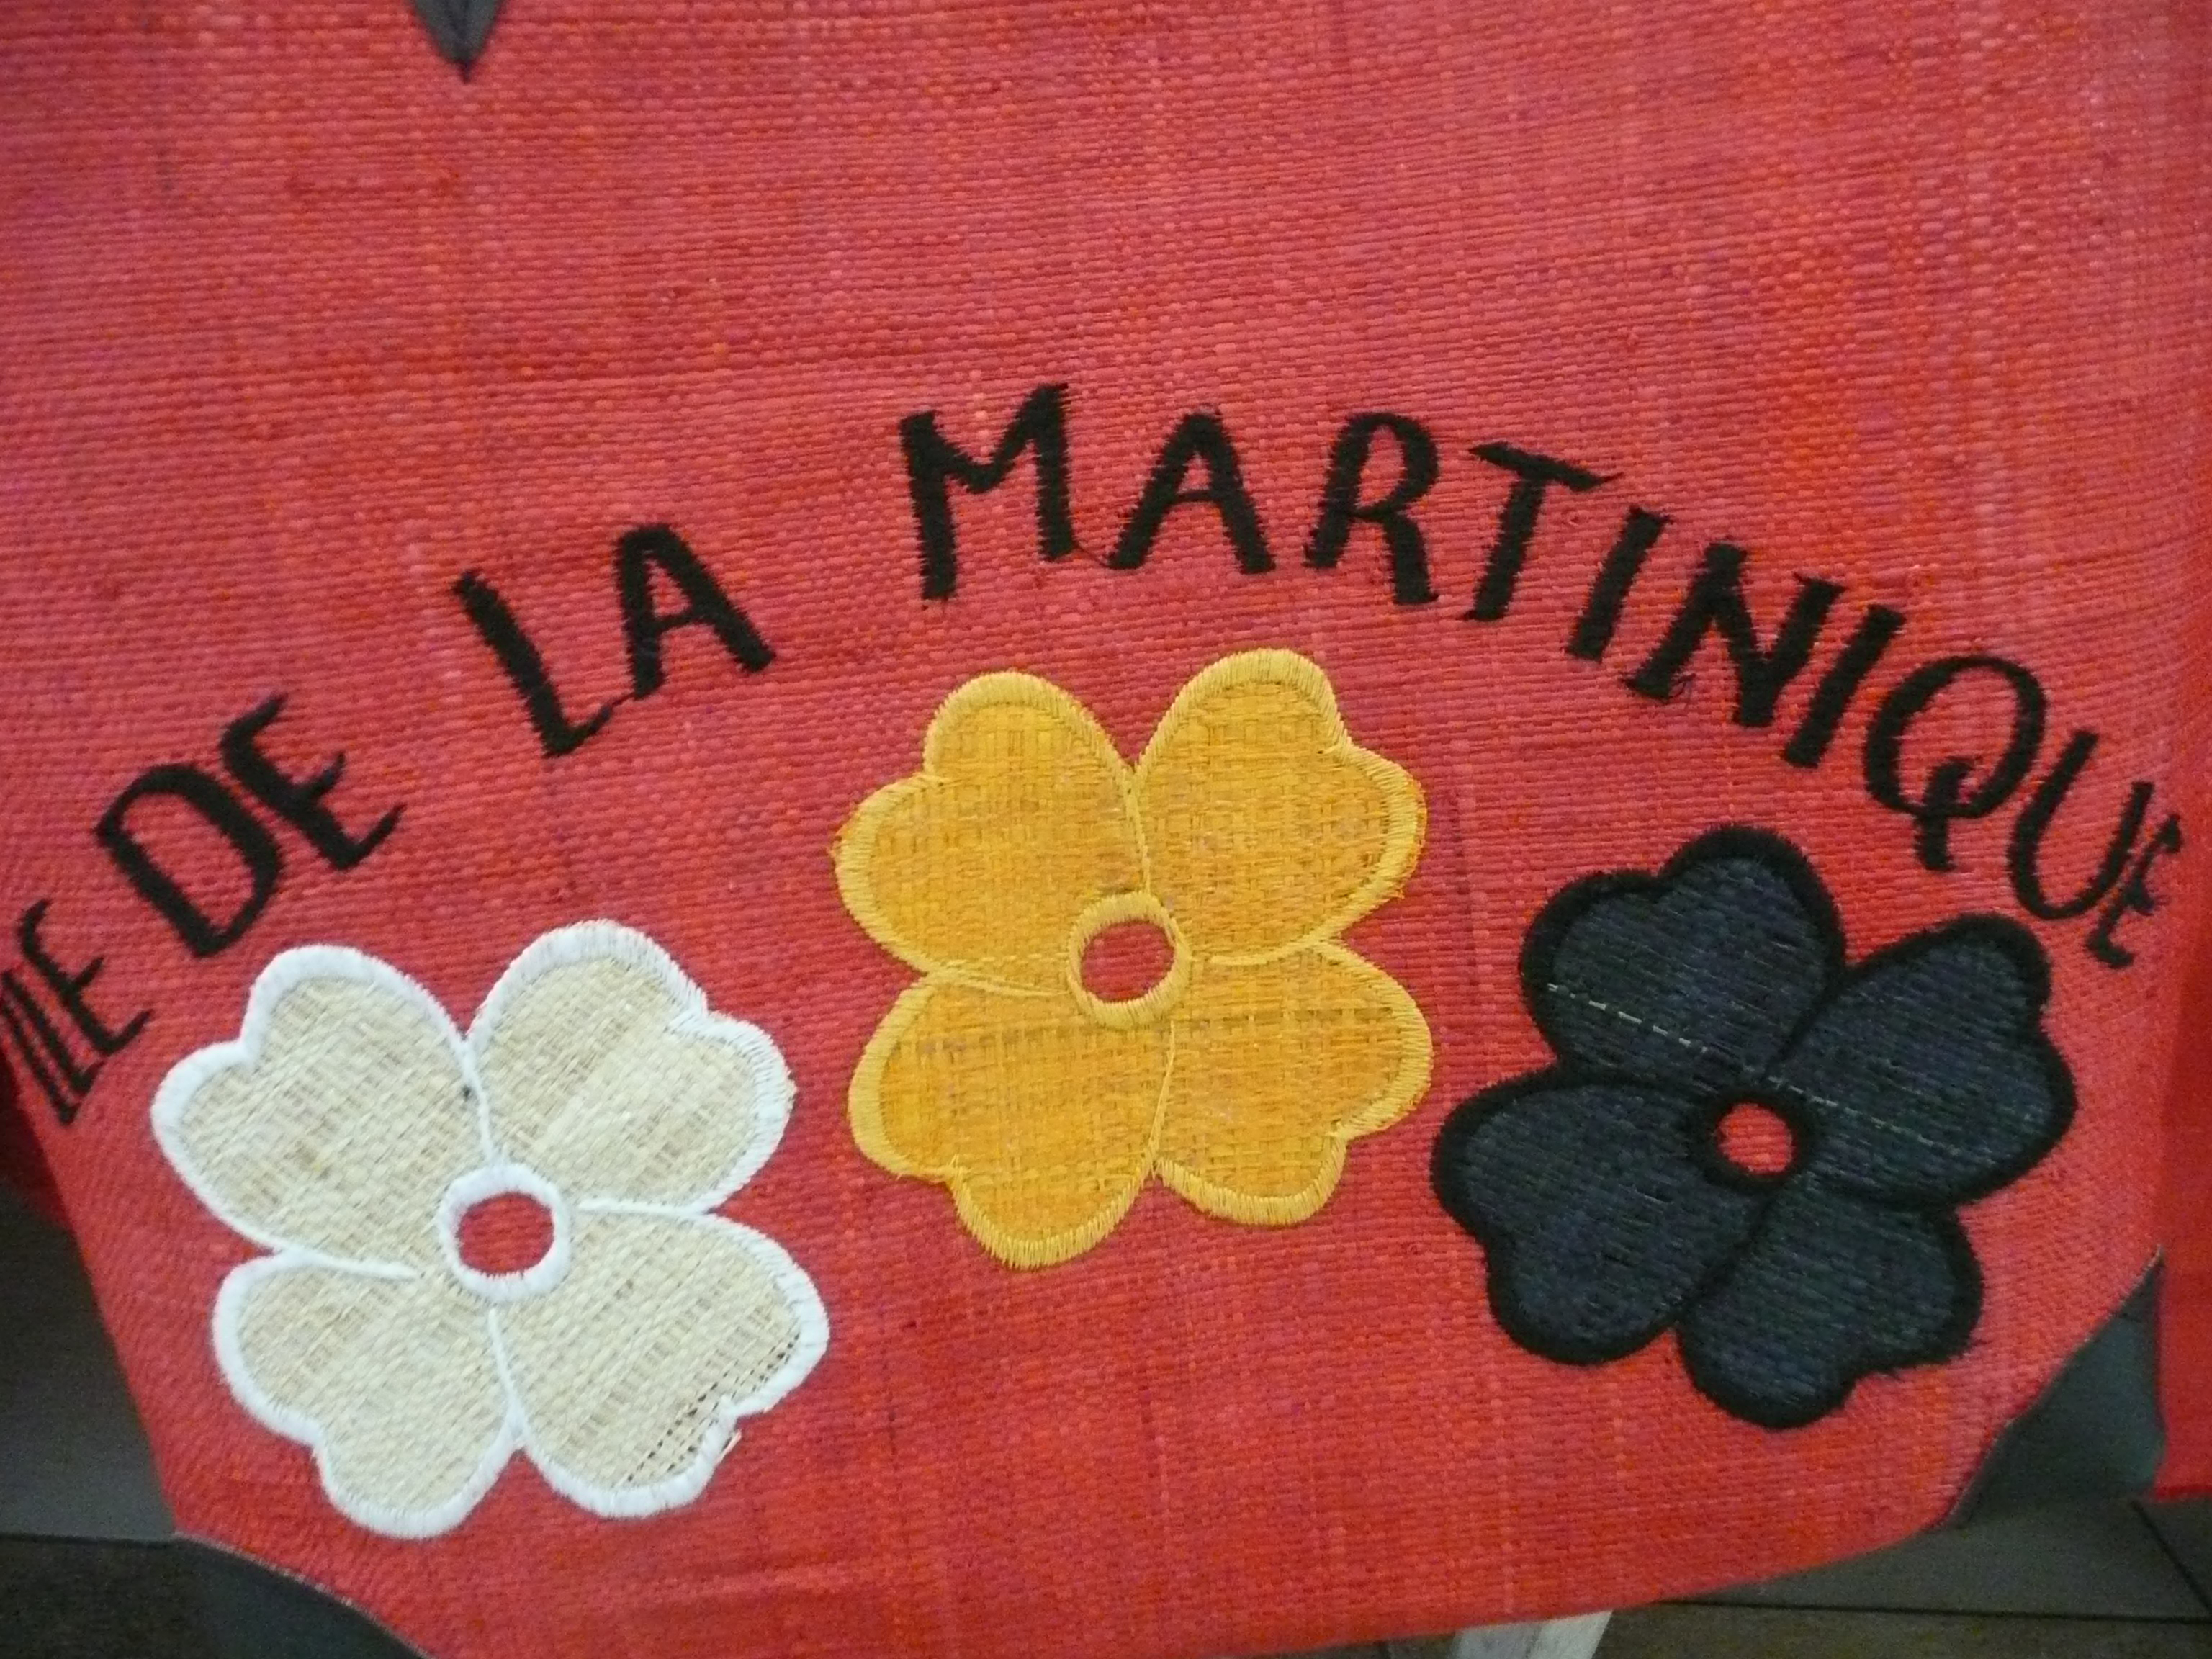 Martinique – the Flower of the Caribbean